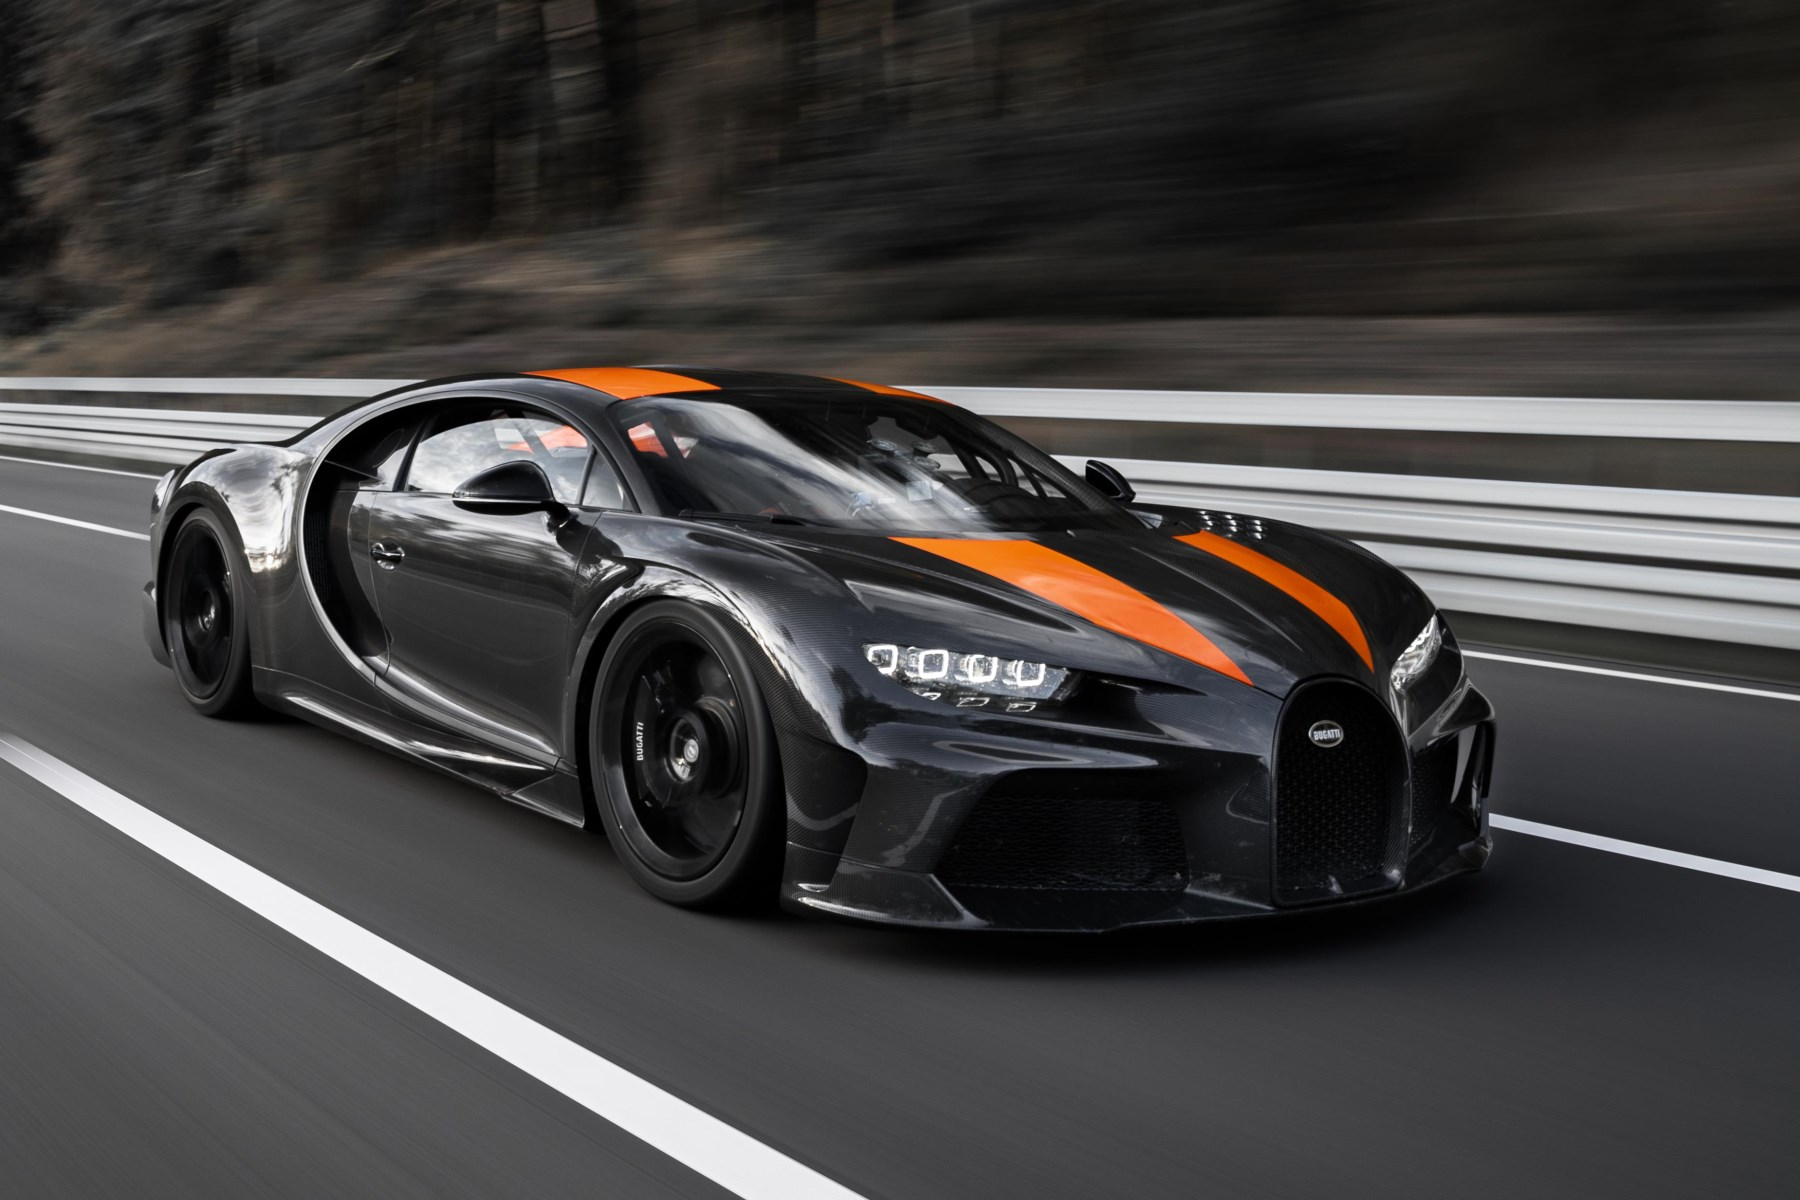 A modified Bugatti Chiron hits speeds in excess of 300mph